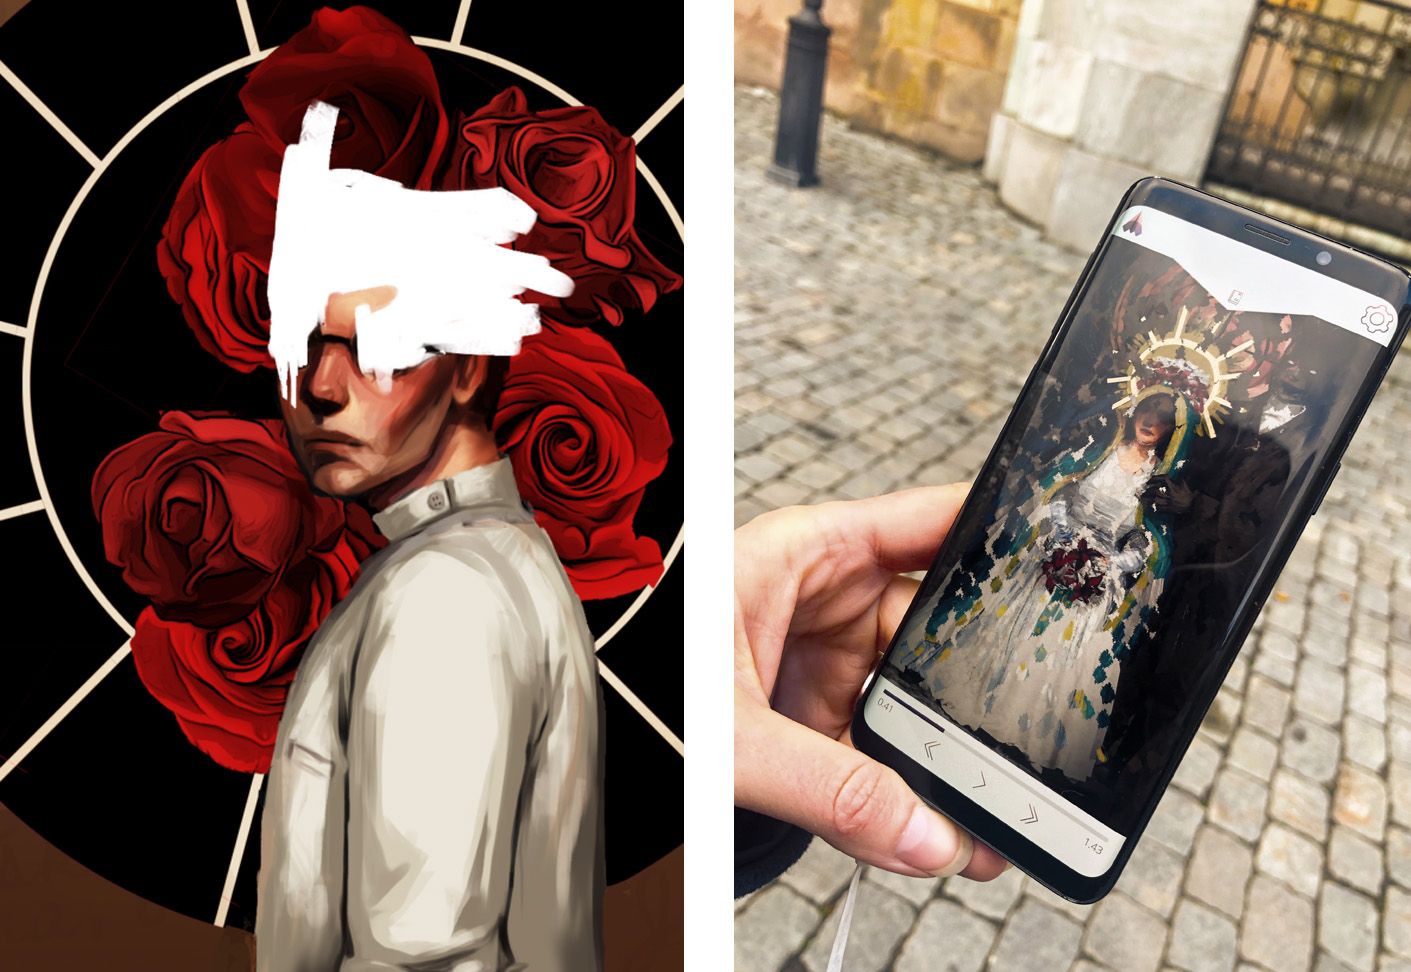 Two images, the first one is an illustration of Doctor Gabriel Glas. His face is obscured. In the second image, a person who is on a walking tour is holding a smartphone. On the screen, a puzzle is visible